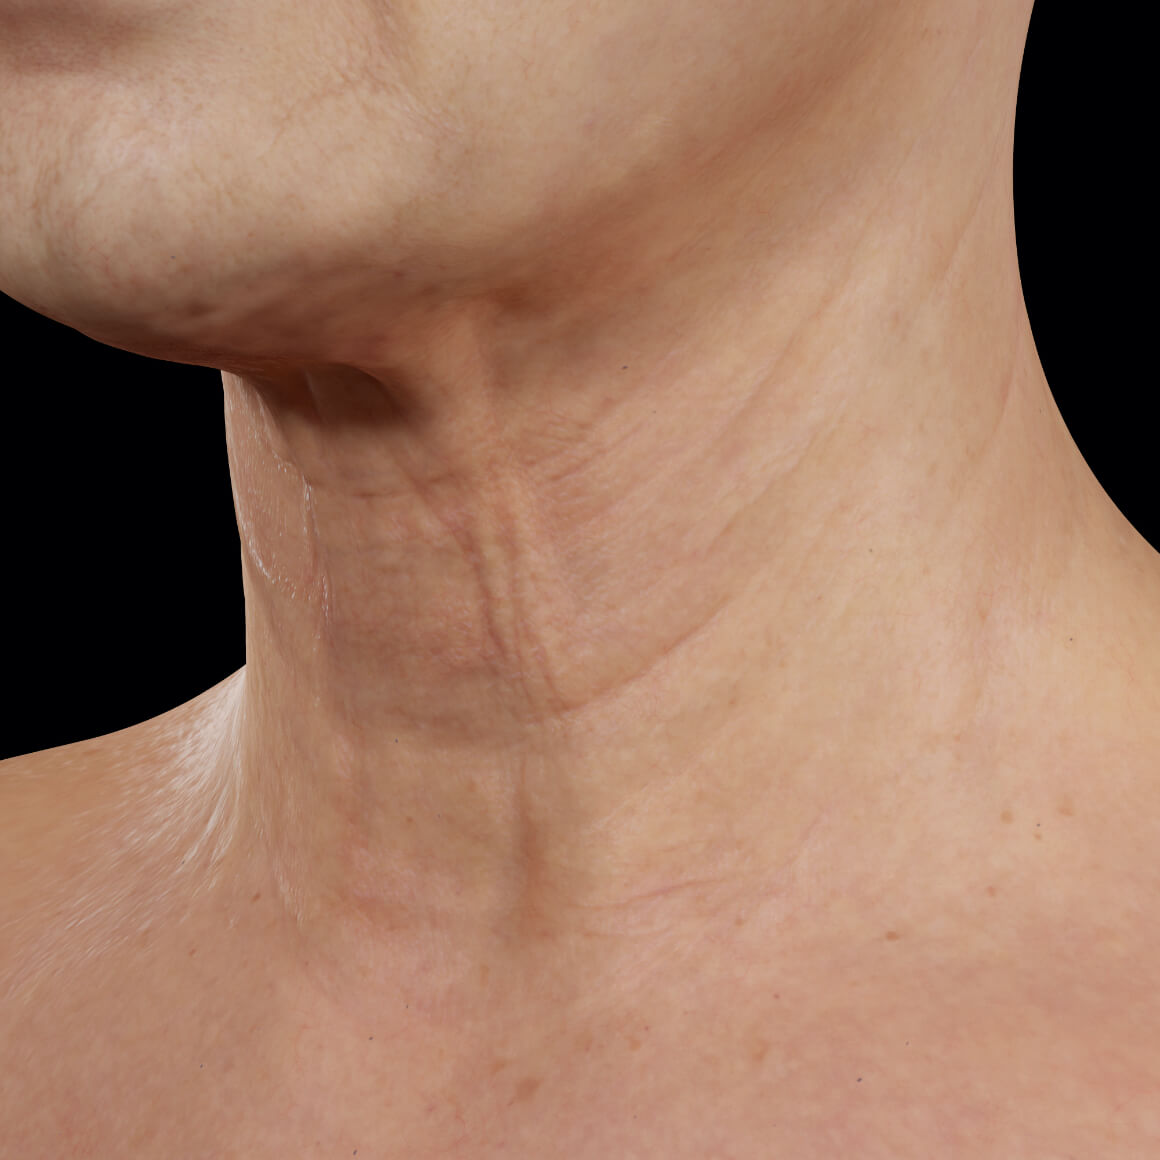 Clinique Chloé female patient positioned at an angle after fractional laser treatments for neck skin tightening